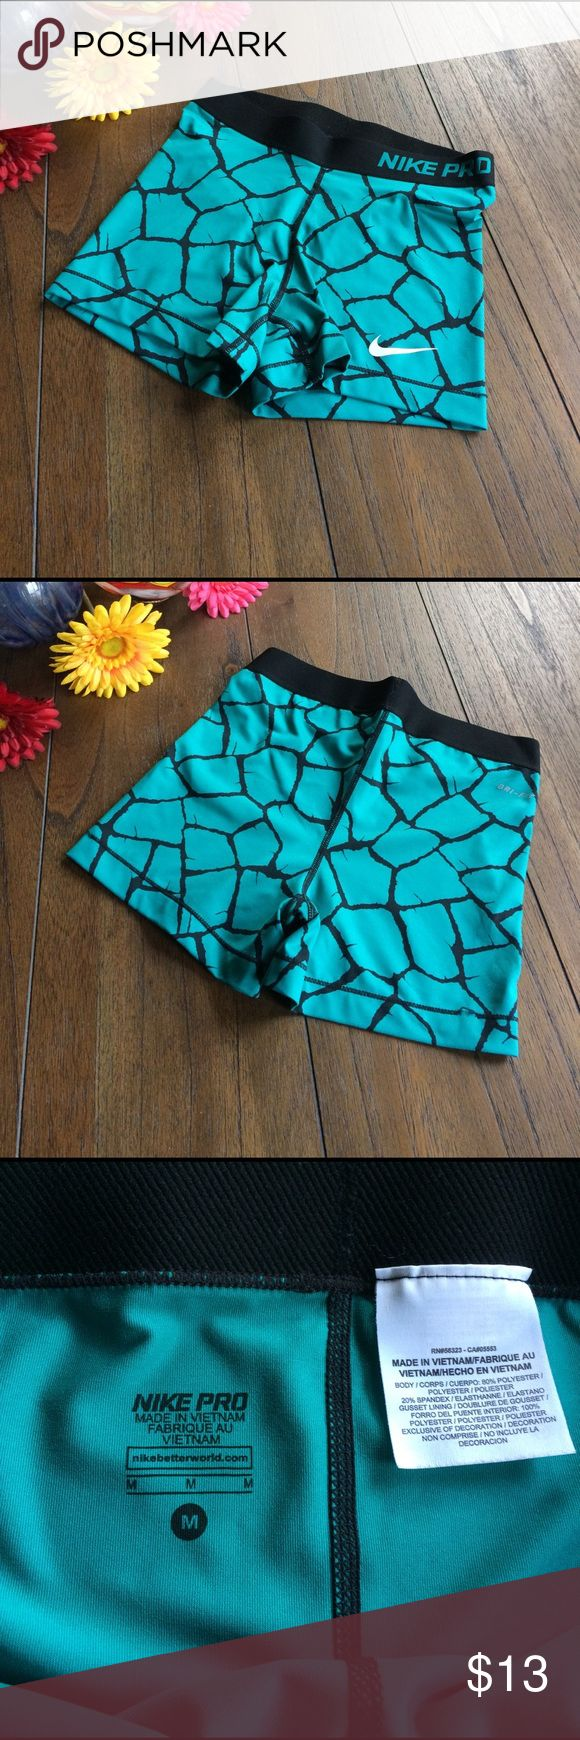 Nike Pro Compression Shorts EUC Nike Pro compression shorts with Dri-Fit technology. Aqua/Green with black pattern. Girl size Medium. Fits approximately 10-12 y/o. Nike Bottoms Shorts